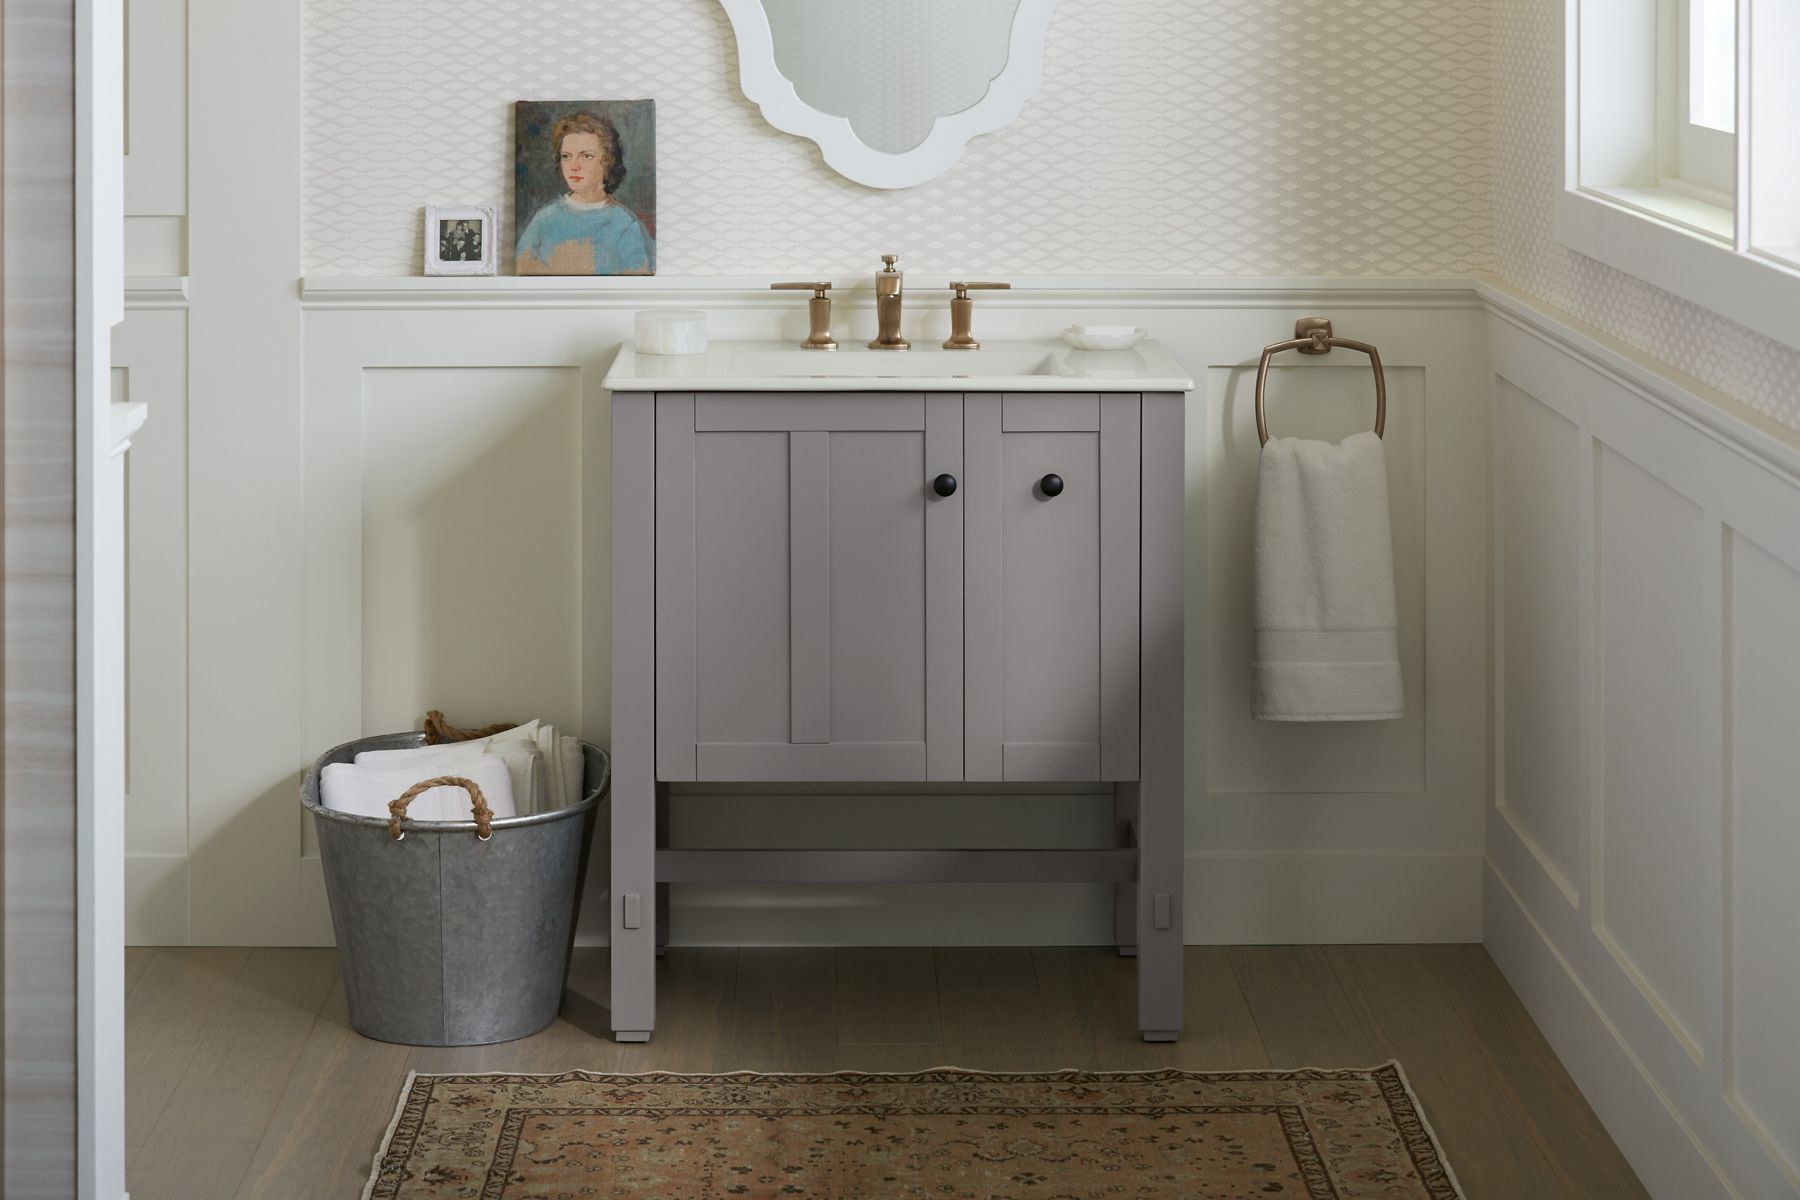 A Fresh Twist On Simple, Shaker Style Furniture Design, The Tresham  Collection Is Steeped In The Traditions Of Classic Americana While  Embracing A Modern ...